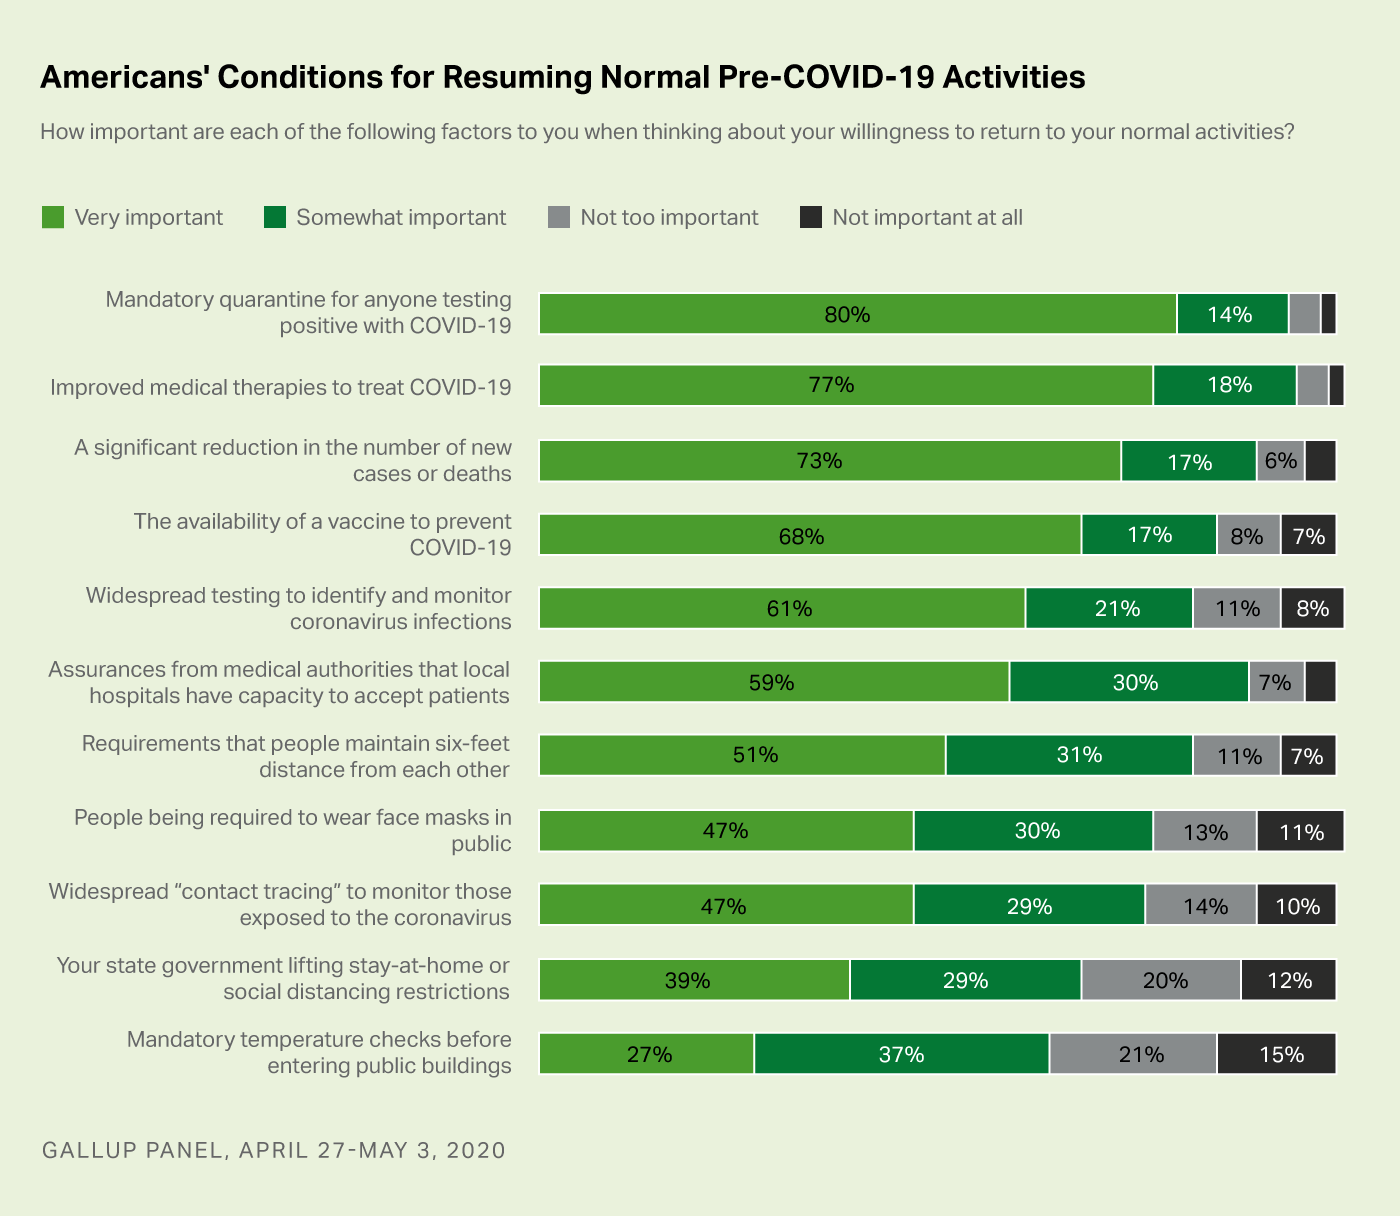 Bar chart. Americans' views of whether 11 different conditions need to be met in order for them to be willing to return to normal activities.